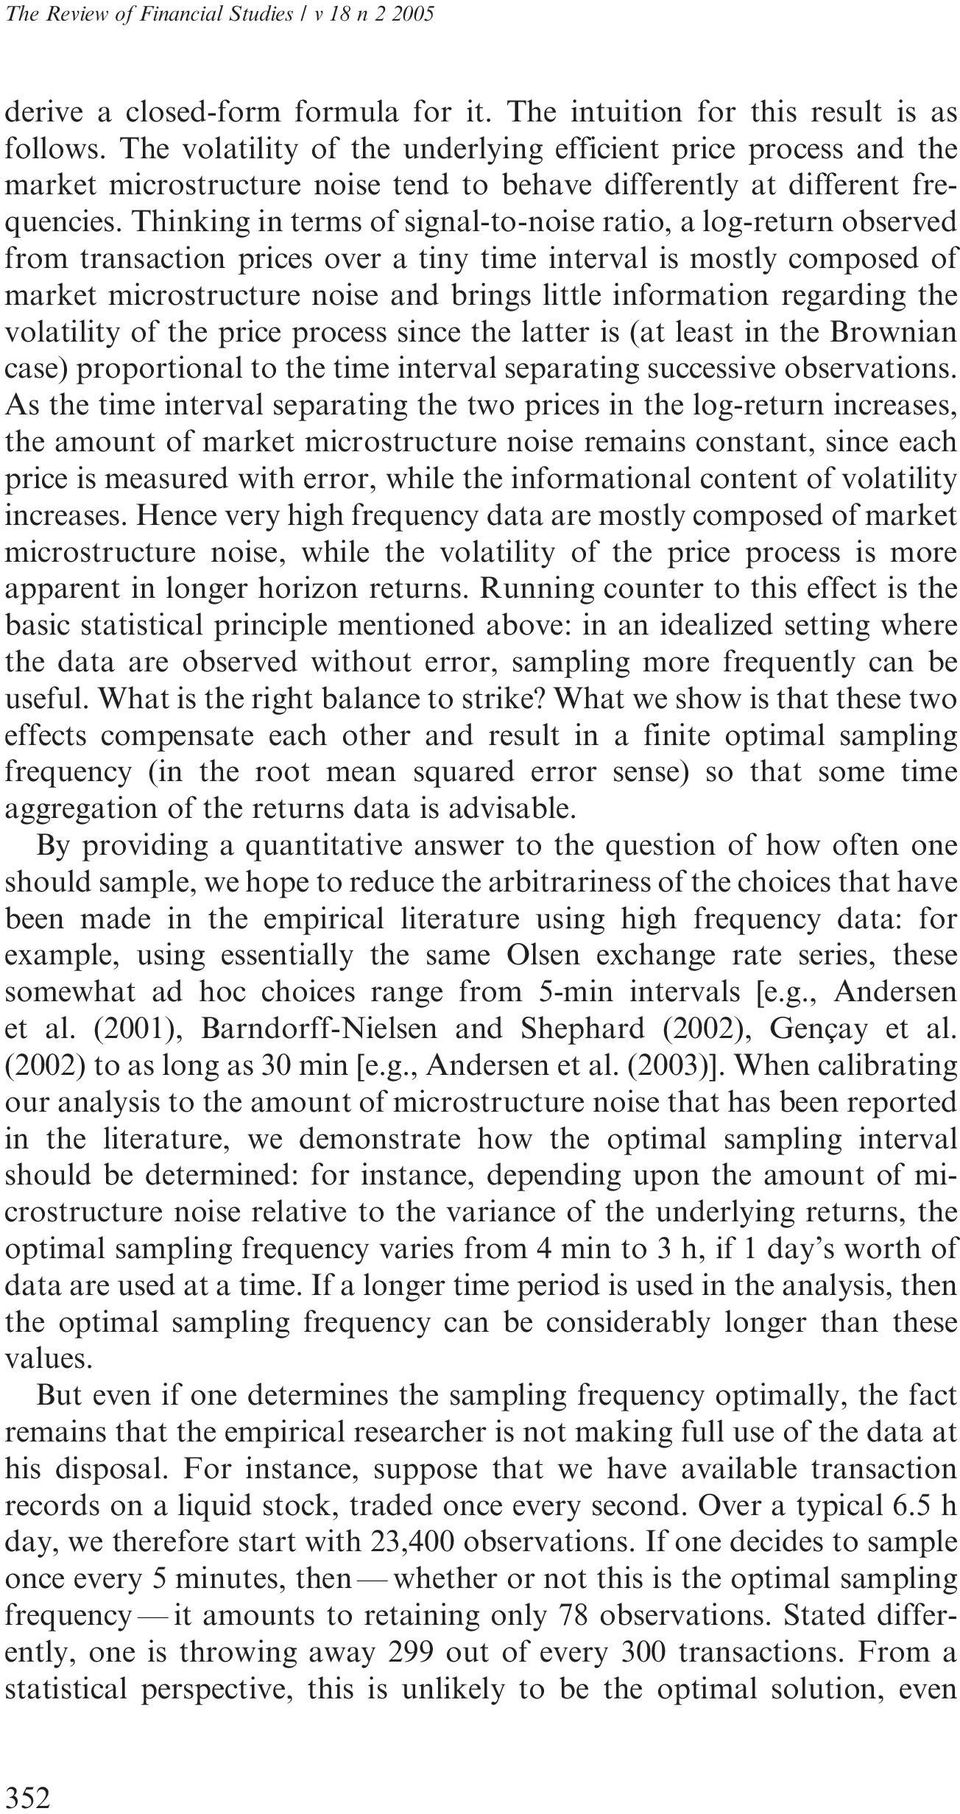 Thinking in terms of signal-to-noise ratio, a log-return observed from transaction prices over a tiny time interval is mostly composed of market microstructure noise and brings little information